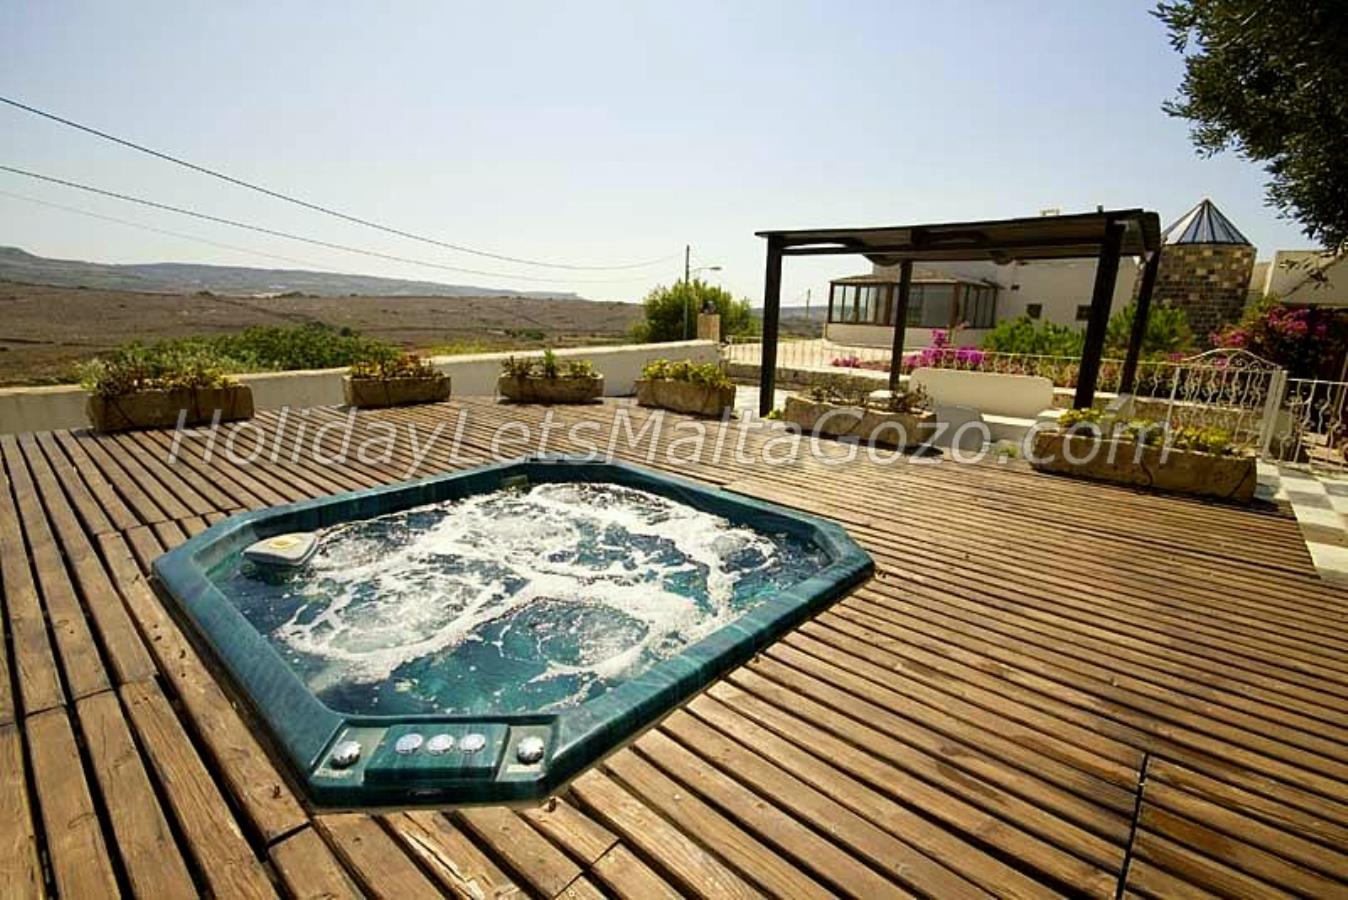 Jacuzzi deck with open Country Side views